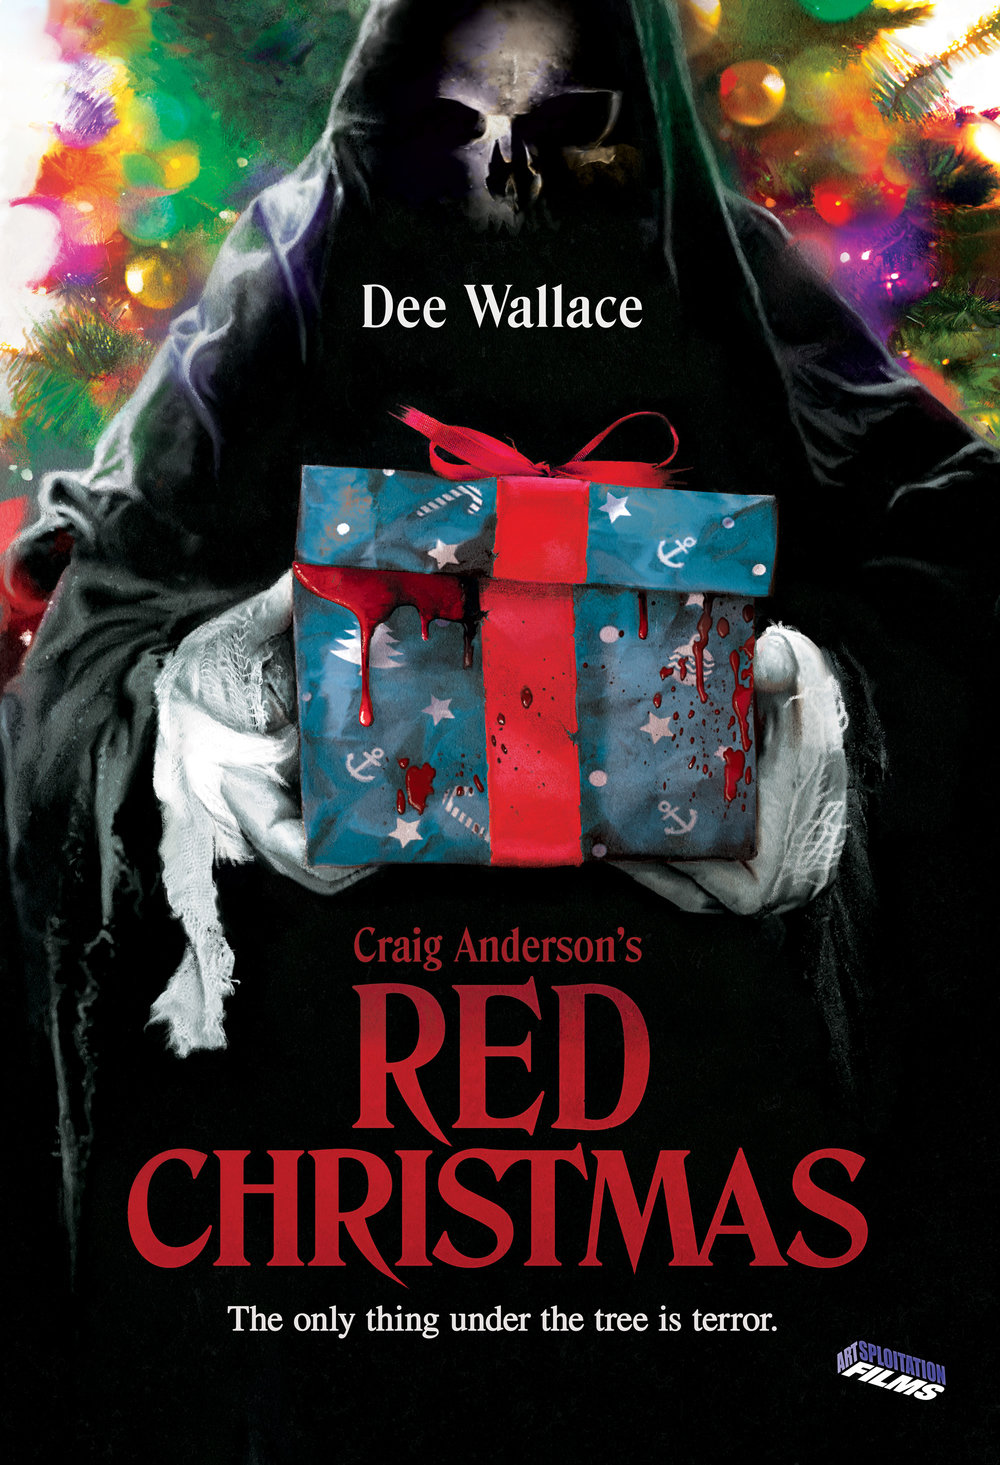 Red_Christmas_poster_v2_low_res.jpg